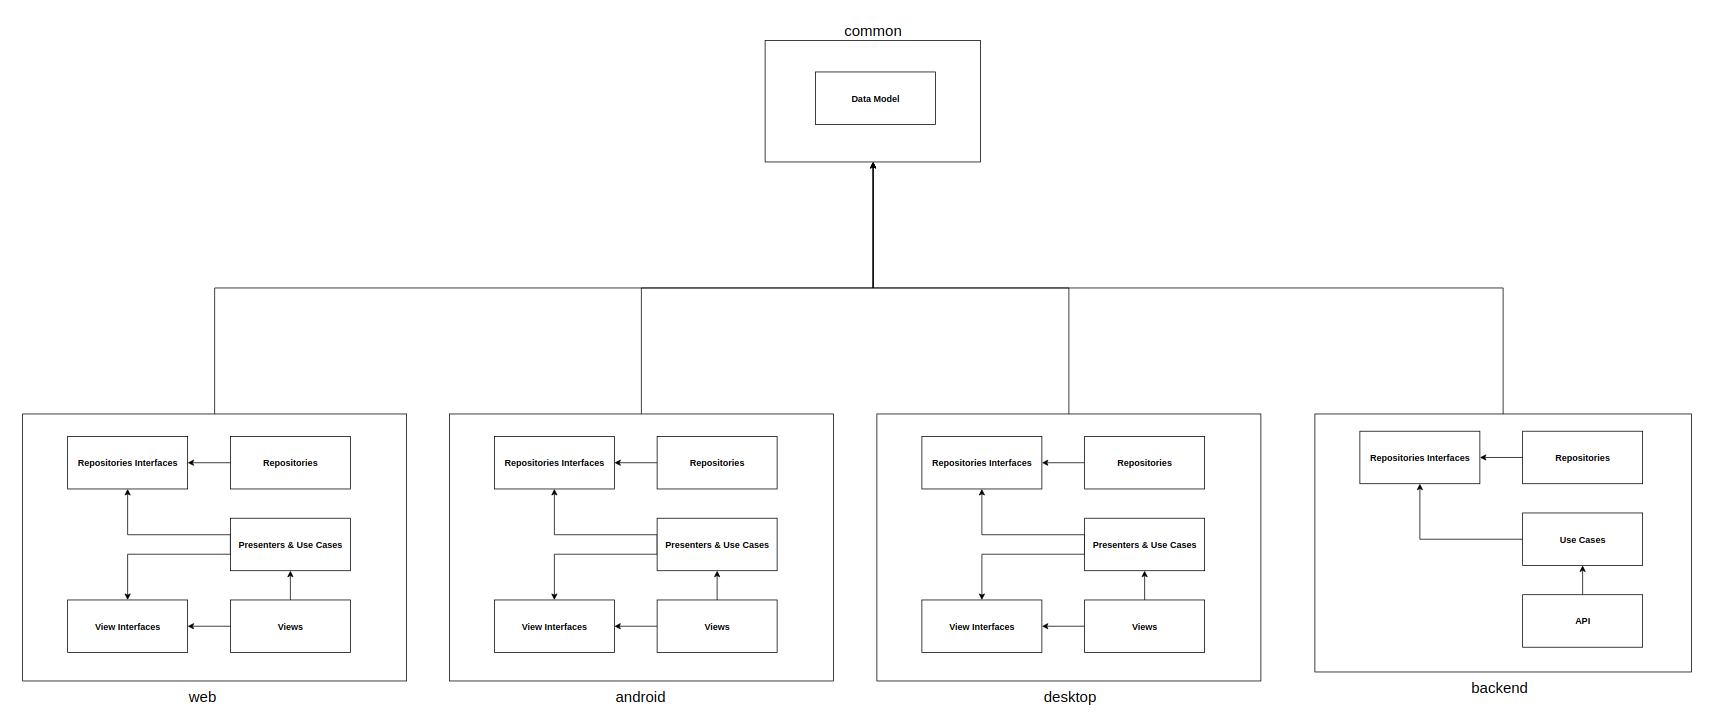 Effective Architecture For Multiplatform Native Development In Kotlin Sha1 Block Diagram Except Data Model Common Can Also Include Other Elements That Are Needed All Modules Do We Need Function To Calculate Hash Improve Api